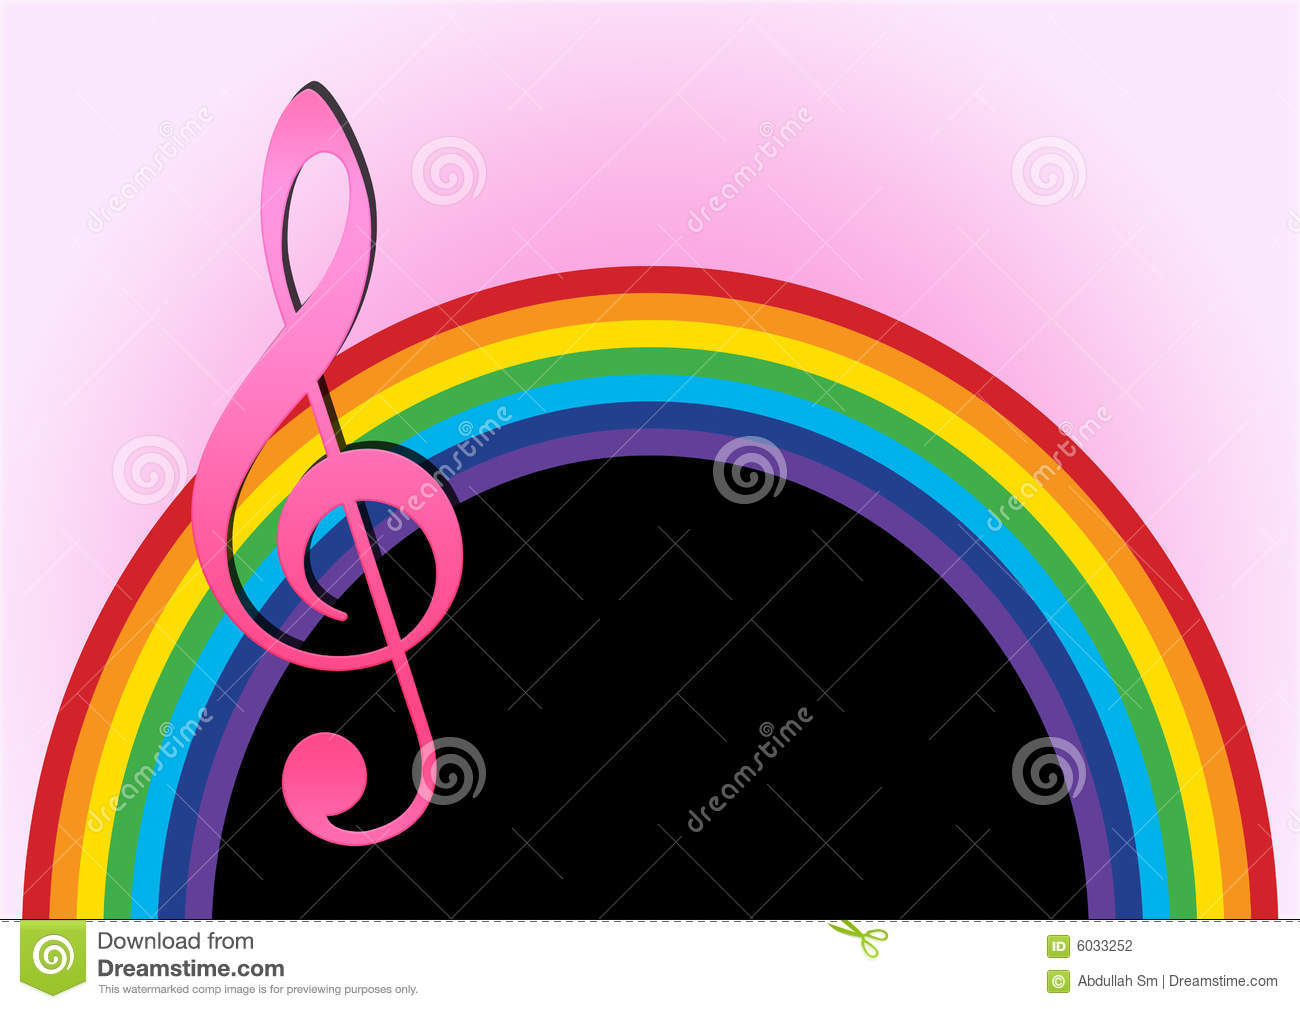 Rainbow Notes On Light Background Stock: Rainbow With Music Note Stock Illustration. Illustration